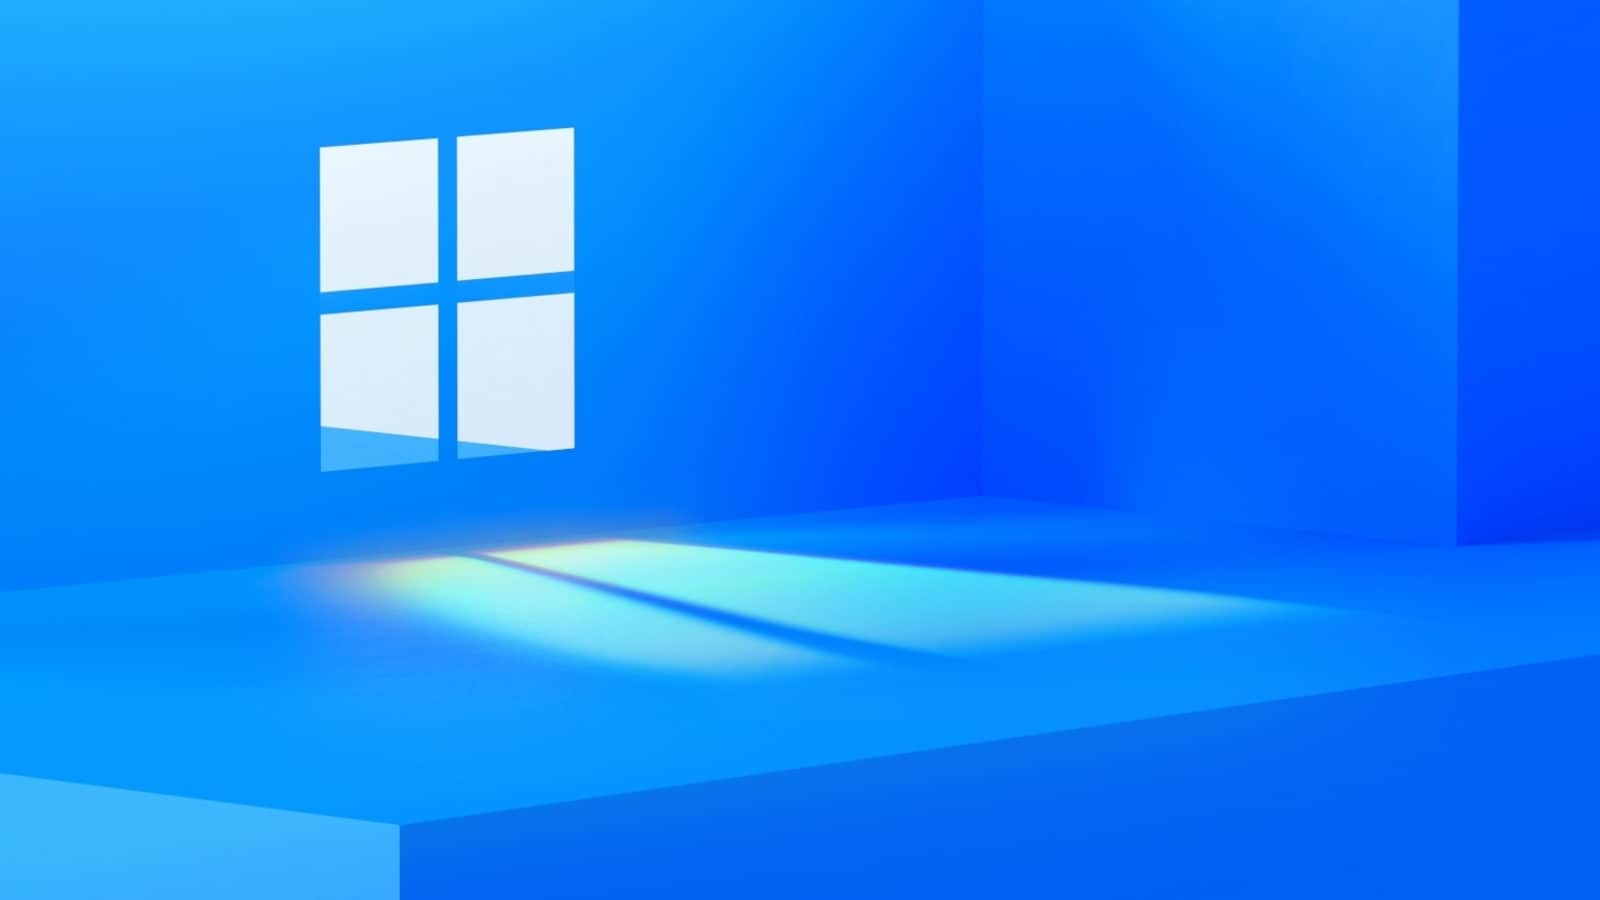 With the next version on the horizon, Microsoft will eliminate Windows 10 support by 2025